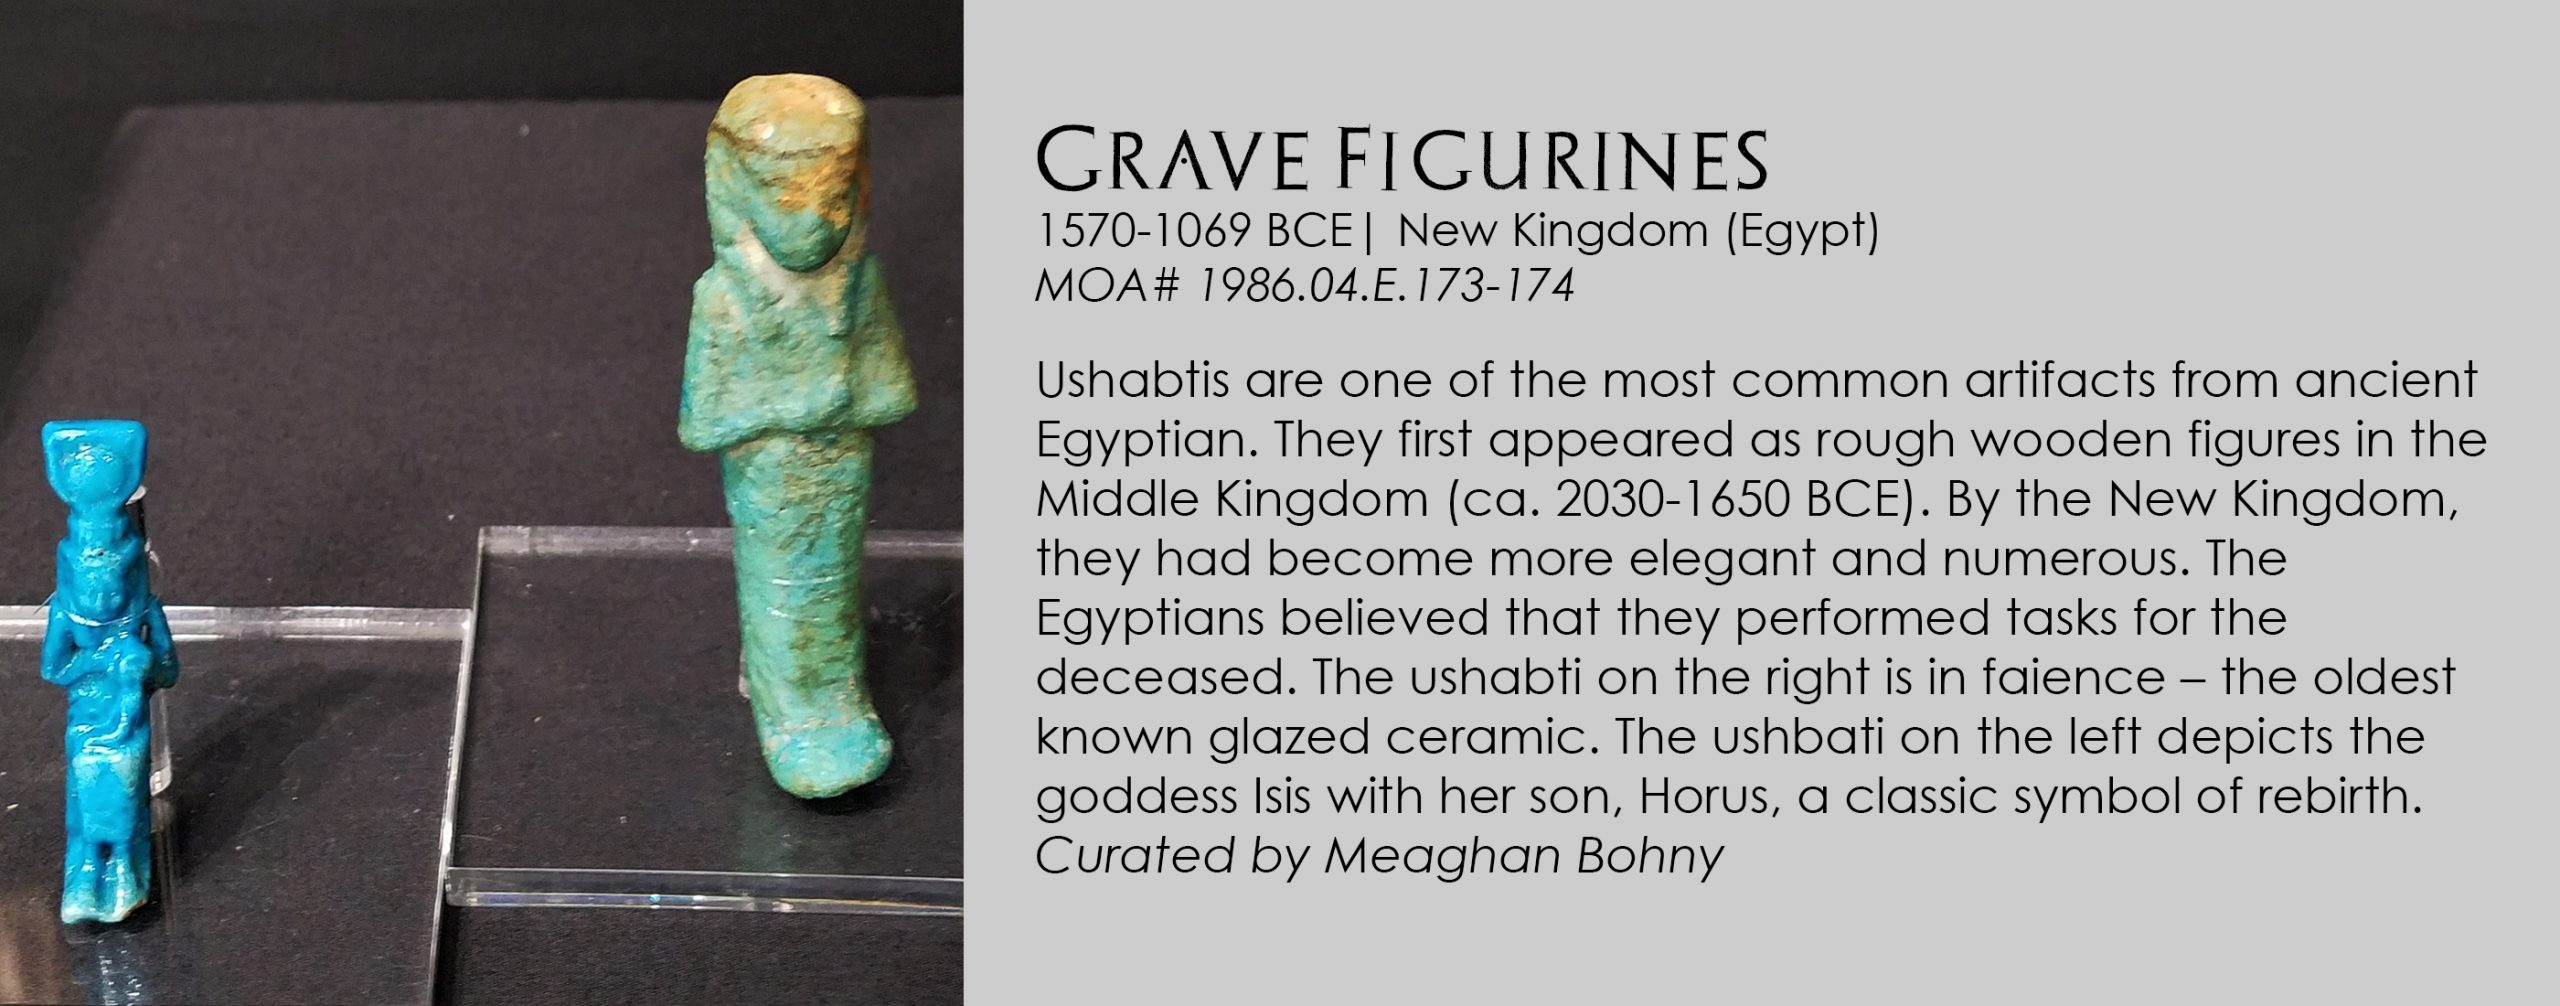 Ushabti grave figures from Egypt